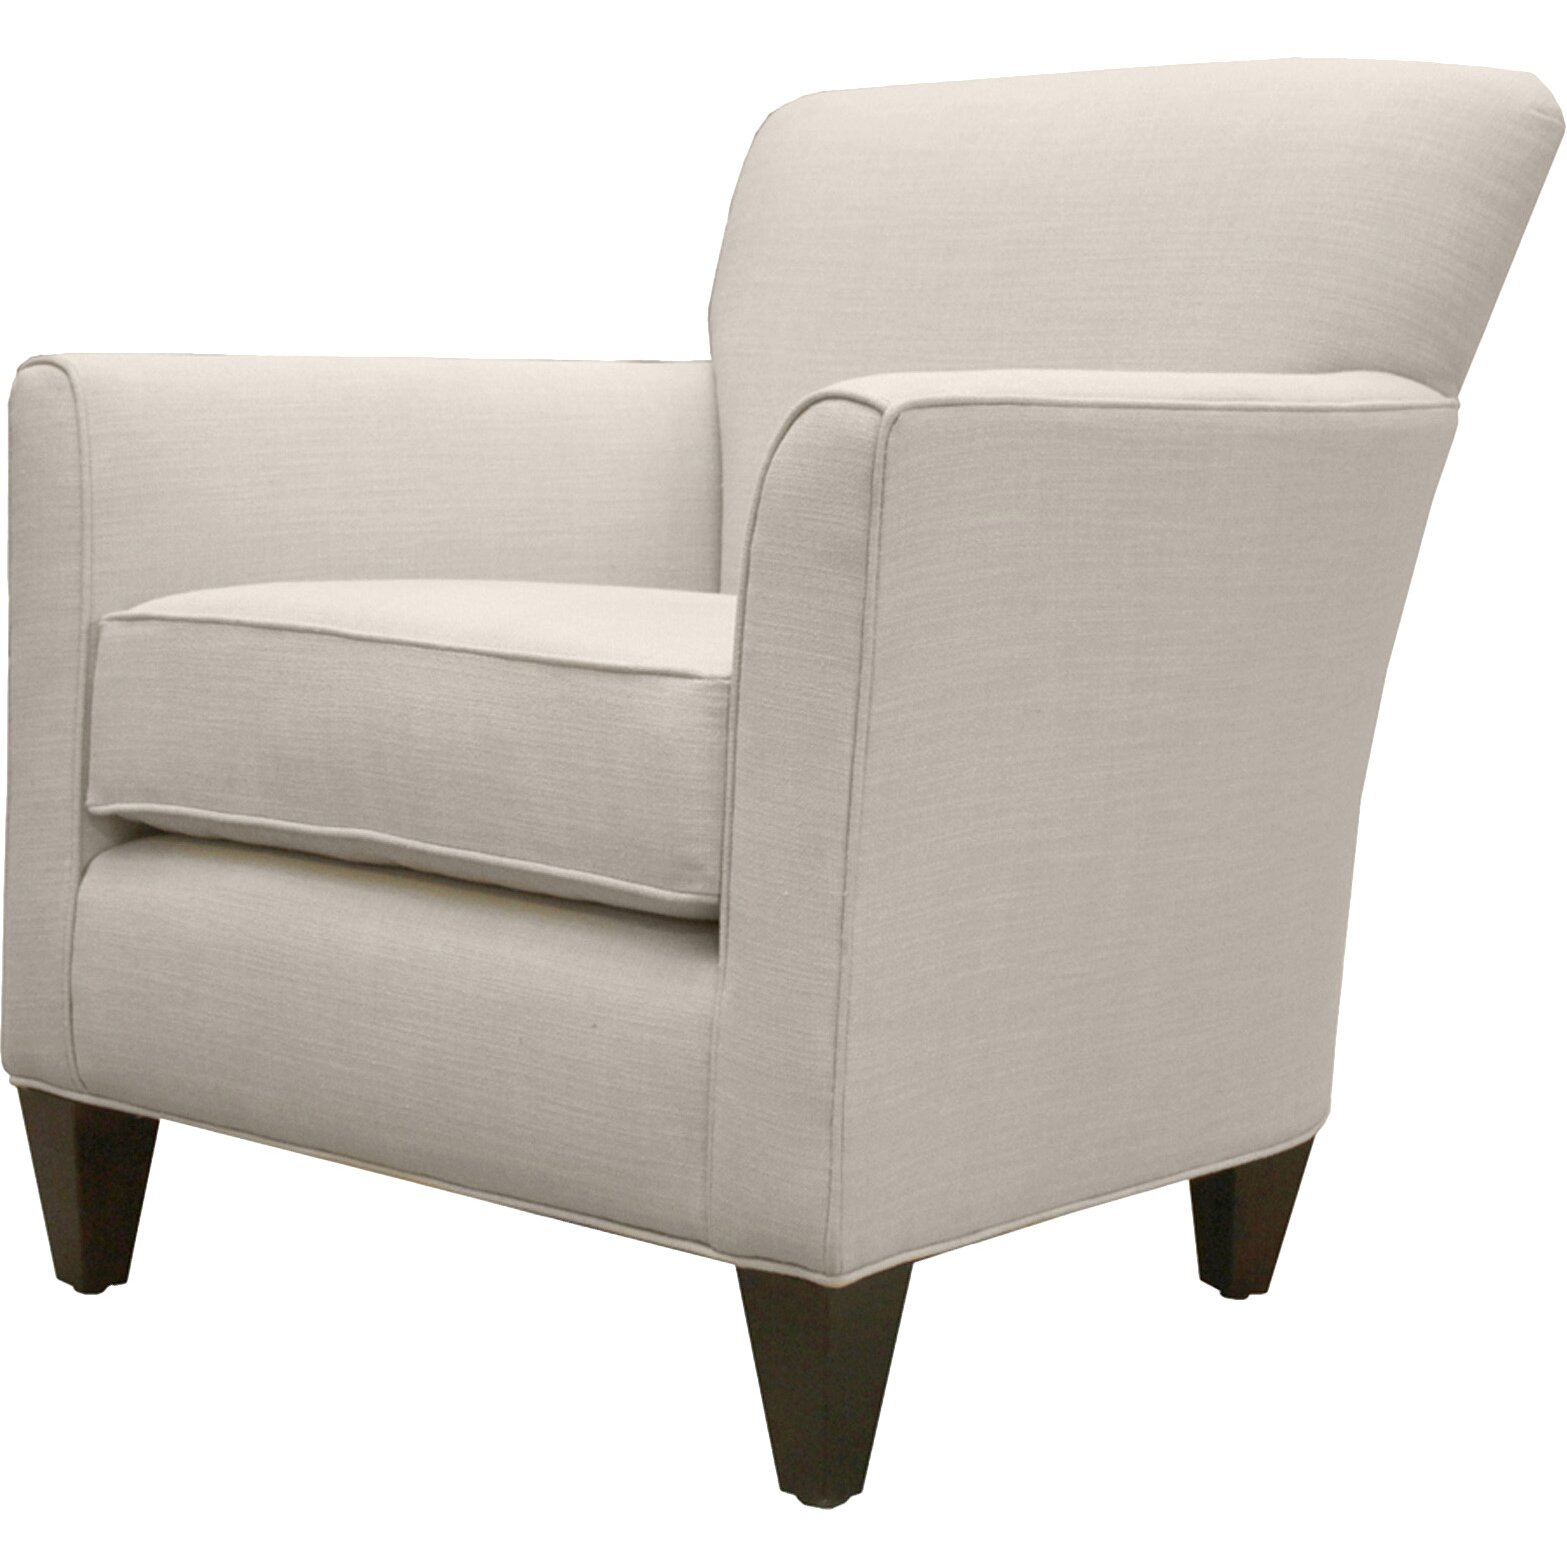 South Cone Home Allessandria Linen Arm Chair & Reviews